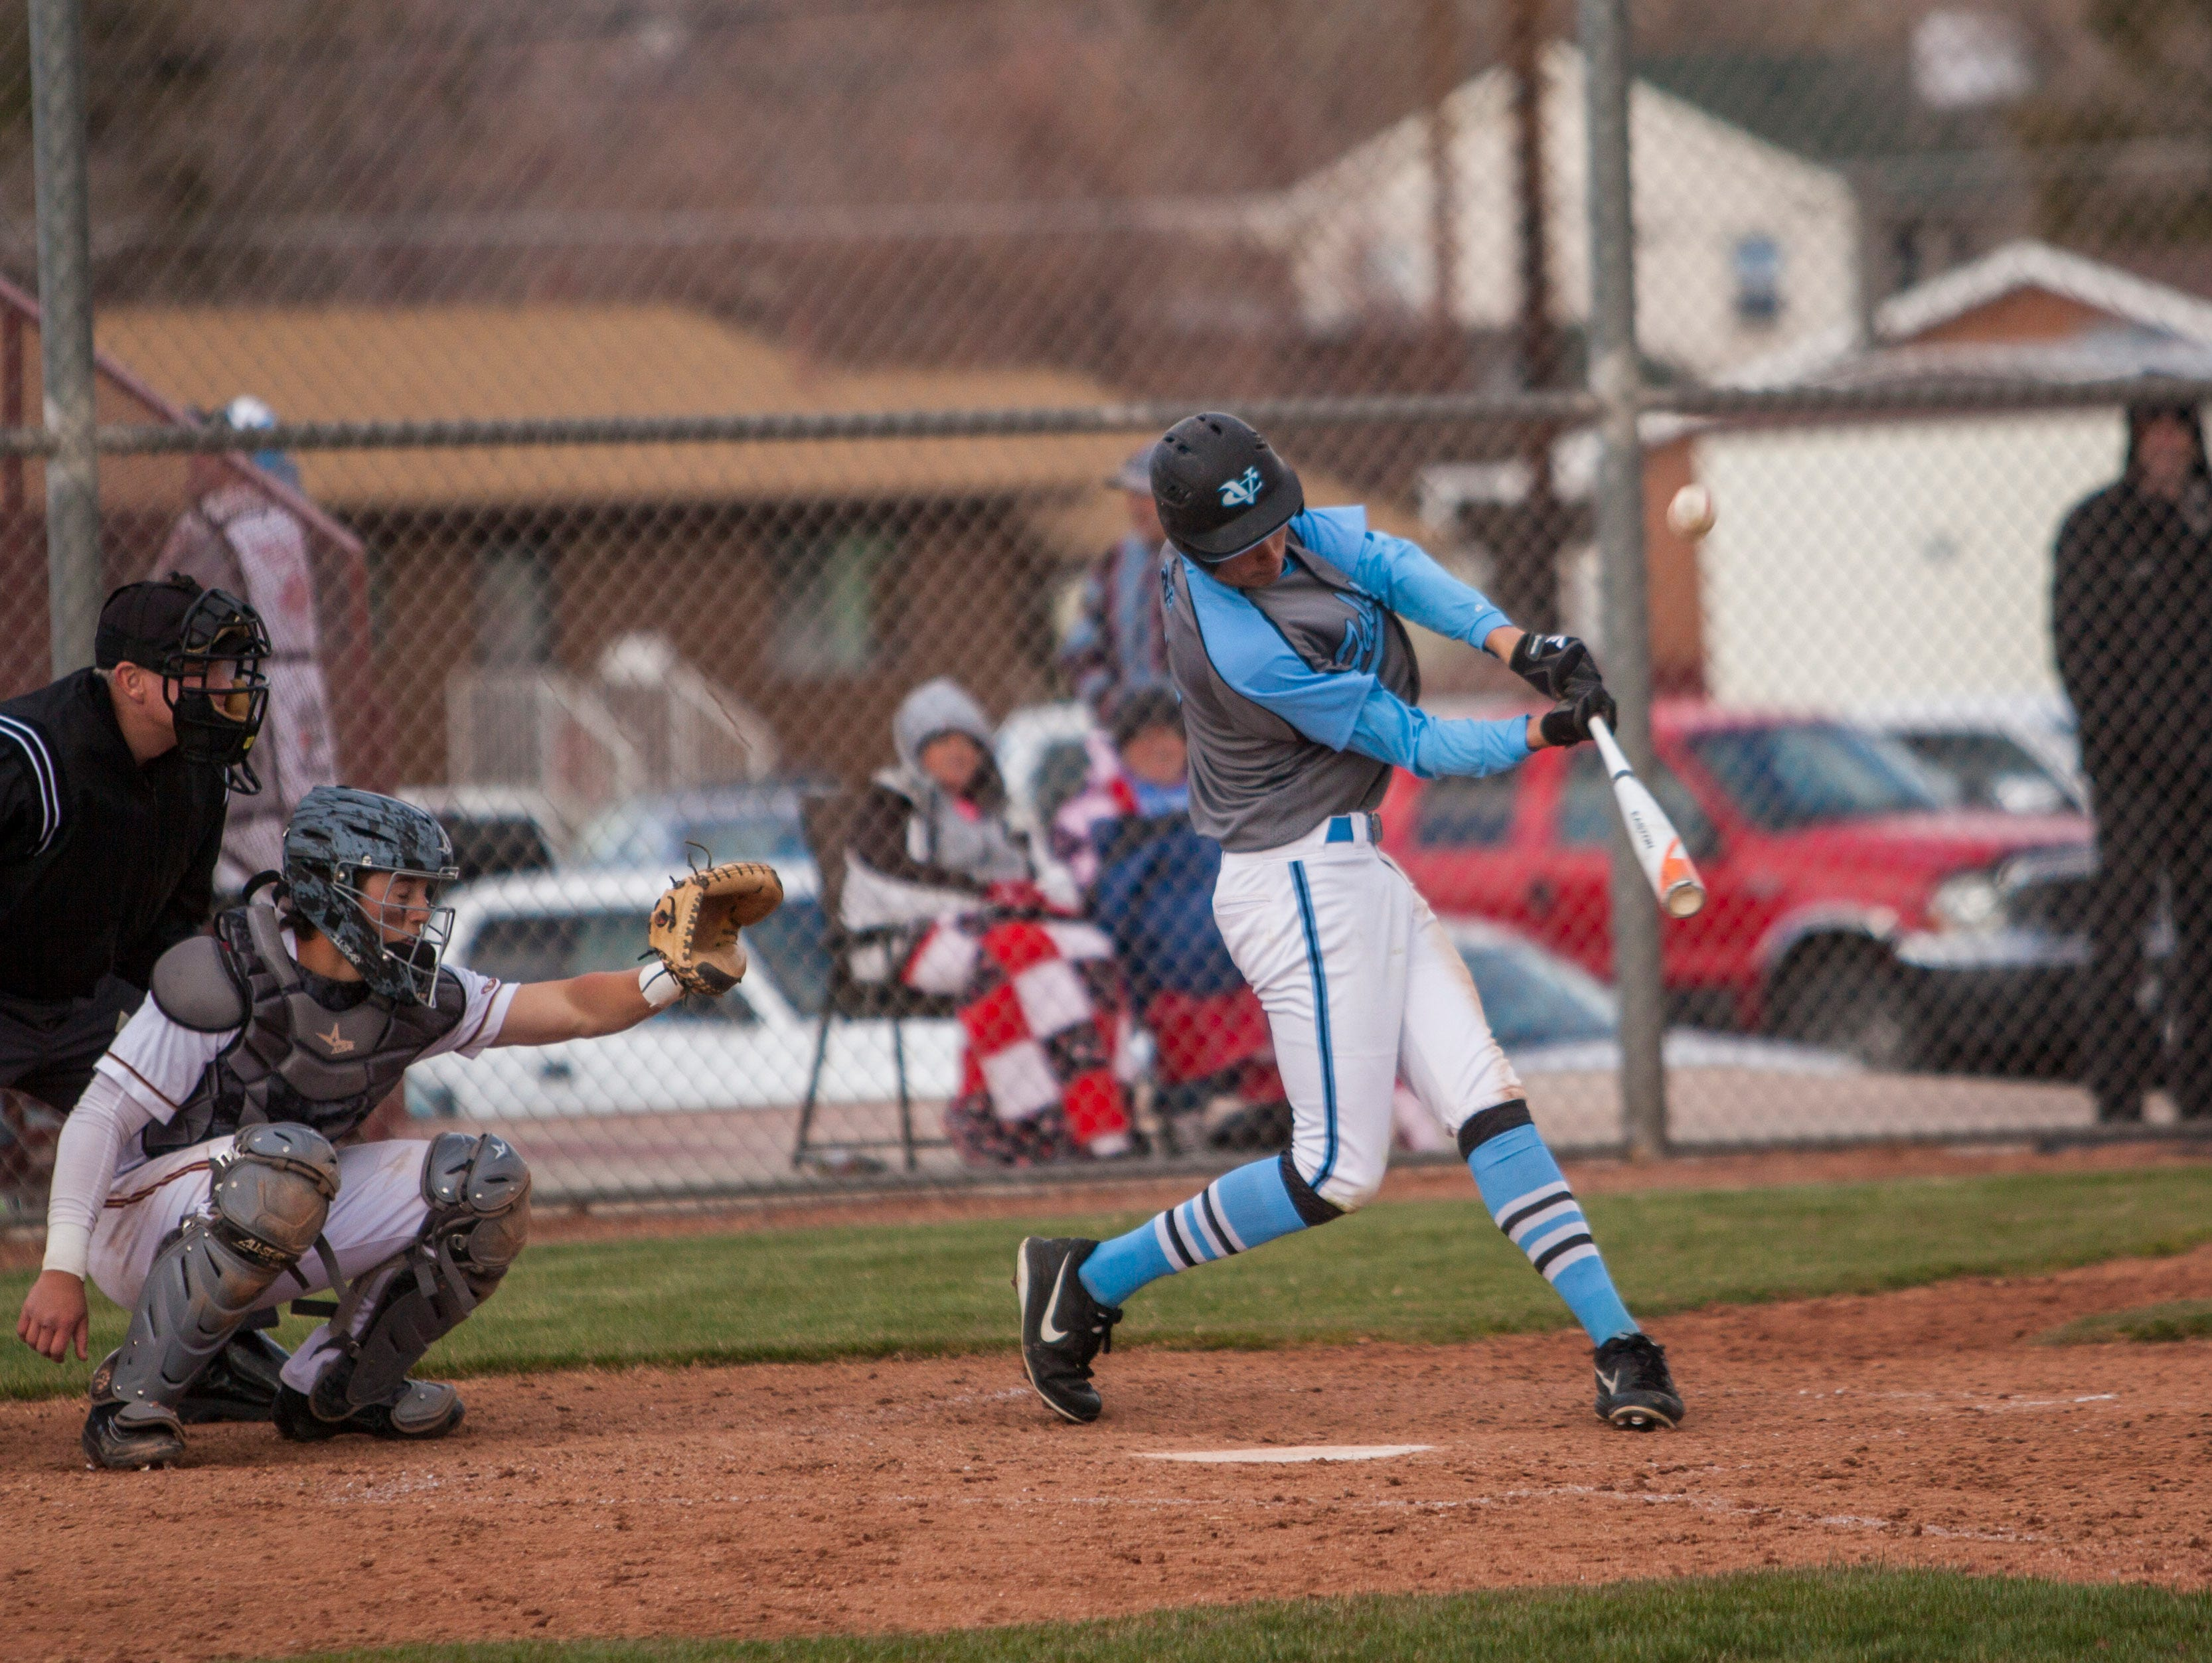 Canyon View's Tyler Hardin connects with a pitch during the game at Cedar High, Thursday, Mar. 31, 2016.